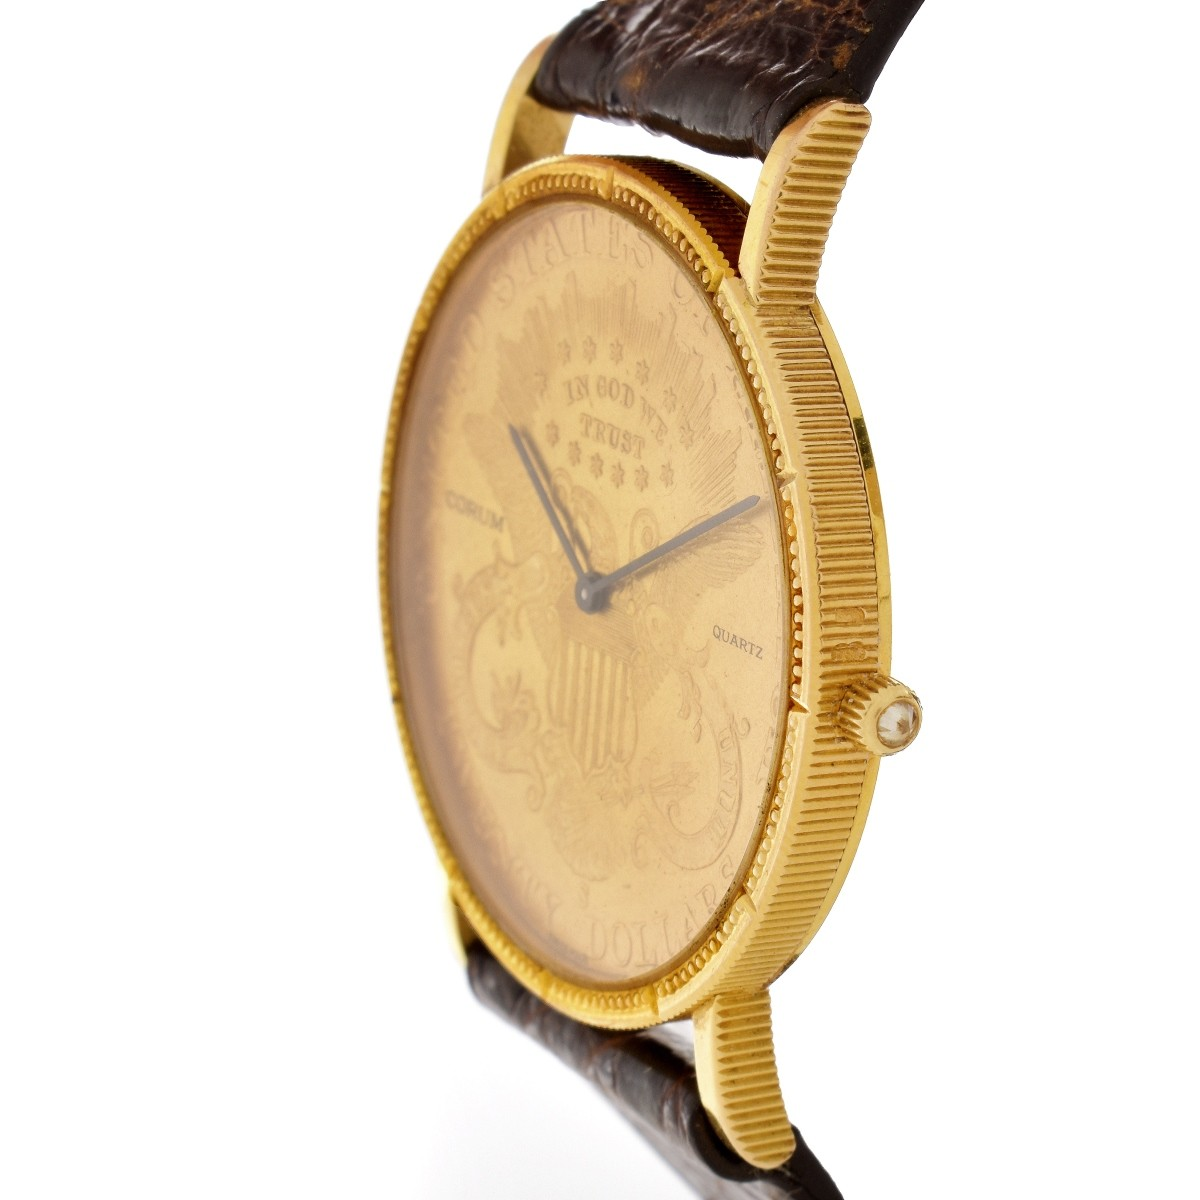 Corum US $20 Gold Coin Watch